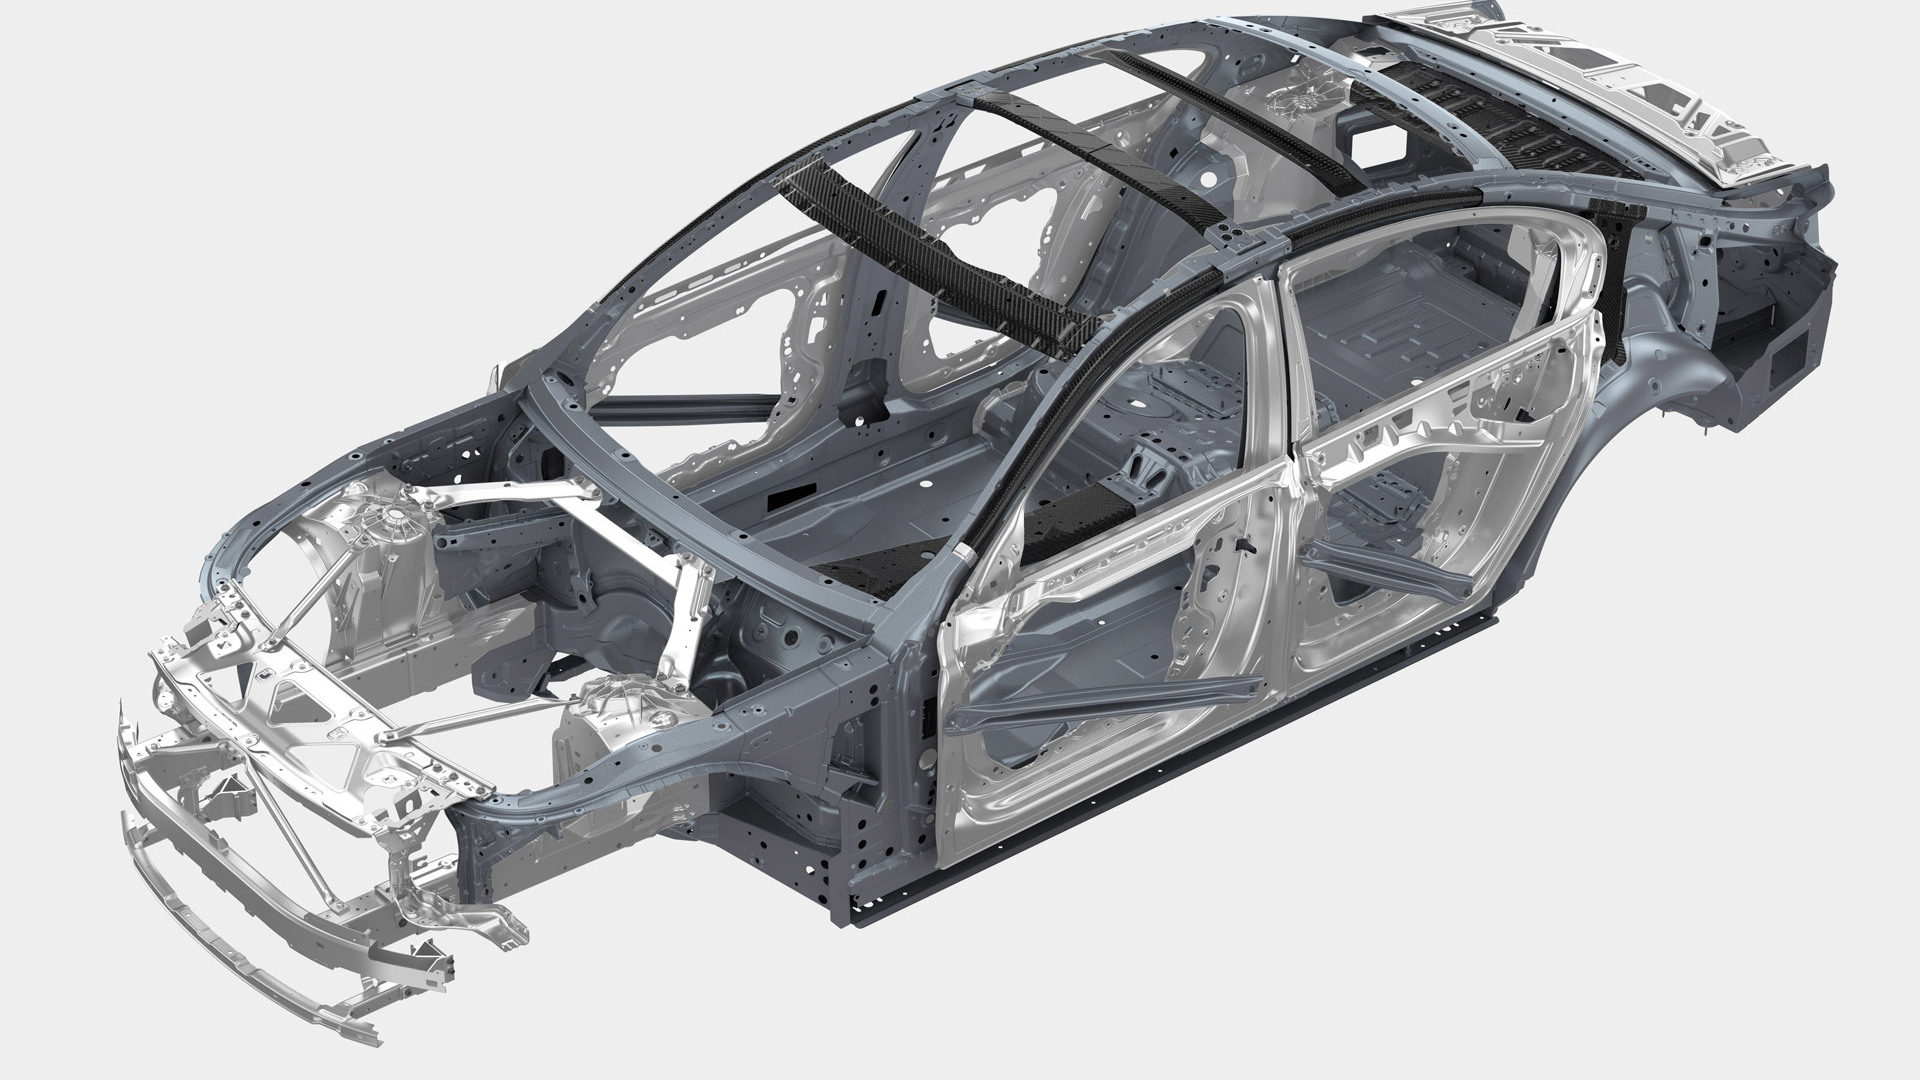 2016 BMW 7-Series multi-material construction